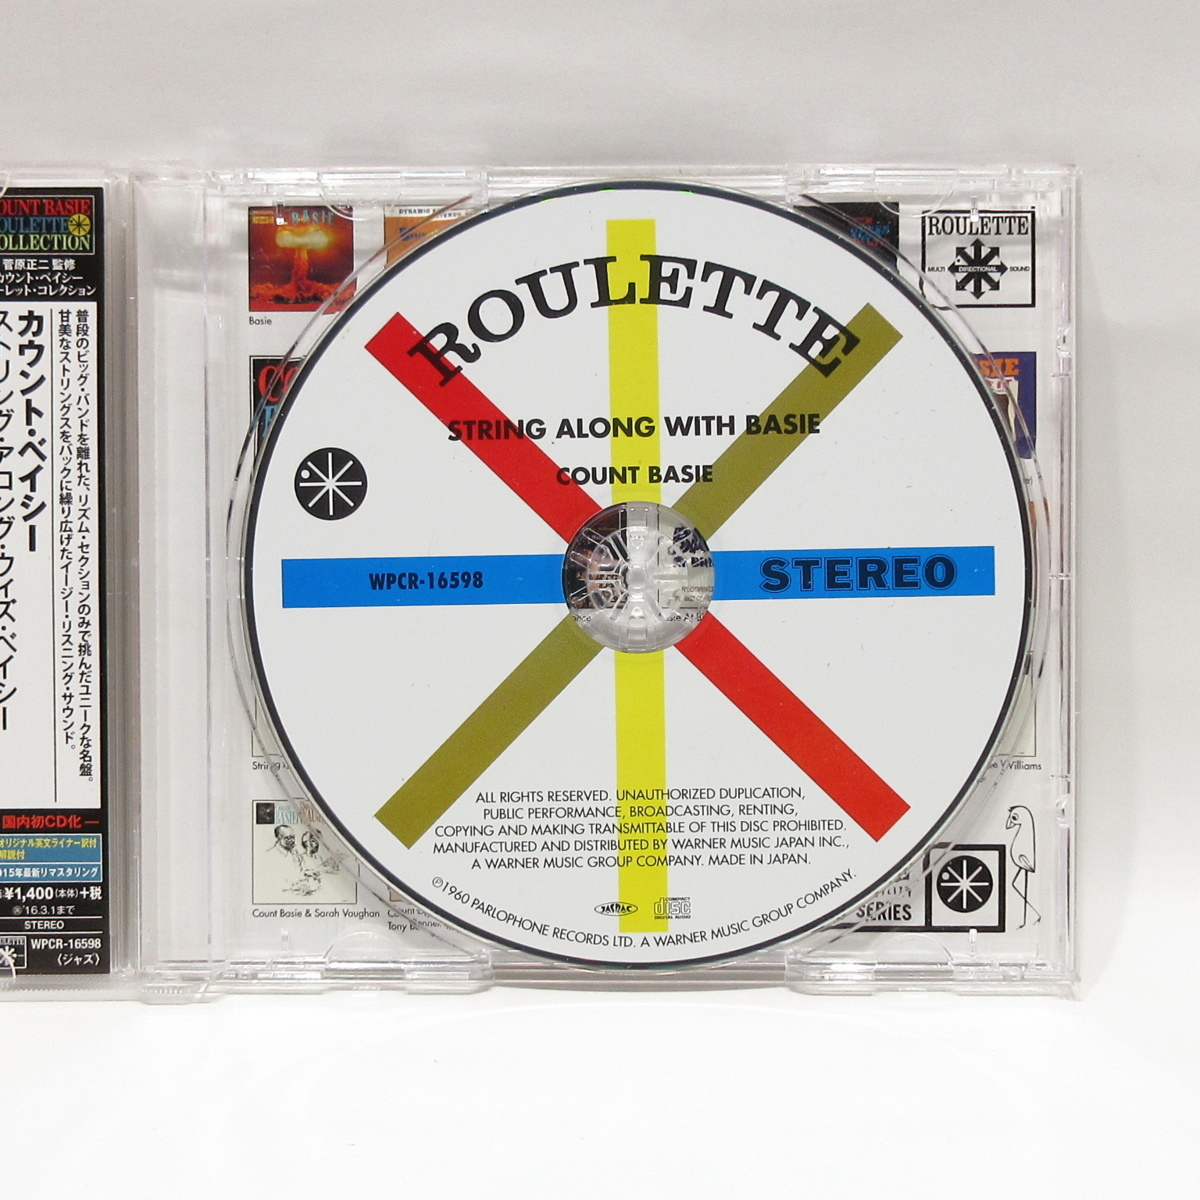 CD◆Count Basie / String Along With Basie◇カウント・ベイシー◆Roulette WPCR-16598_画像3